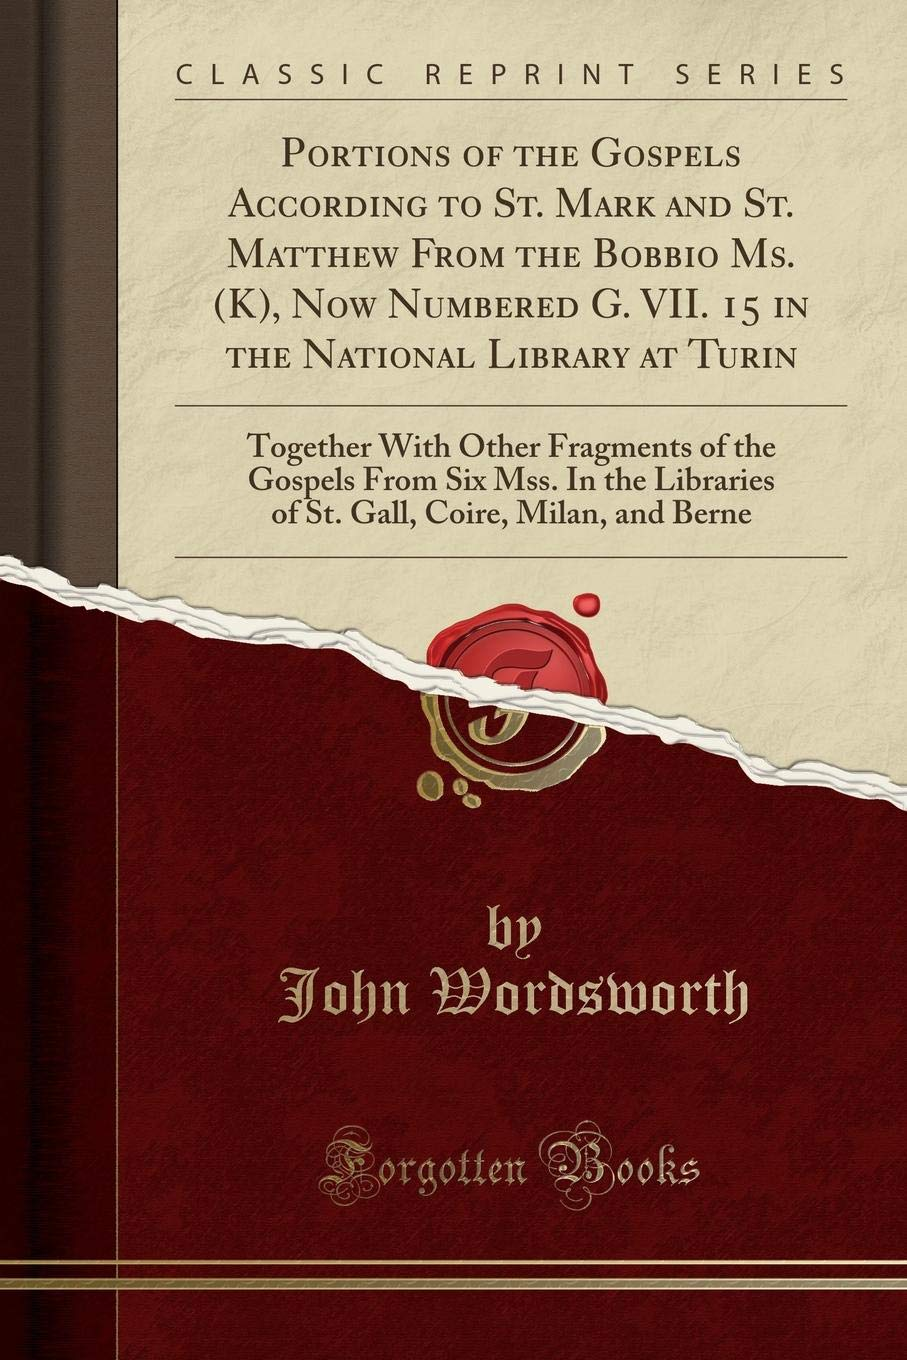 Download Portions of the Gospels According to St. Mark and St. Matthew From the Bobbio Ms. (K), Now Numbered G. VII. 15 in the National Library at Turin: ... Libraries of St. Gall, Coire, Milan, and Ber pdf